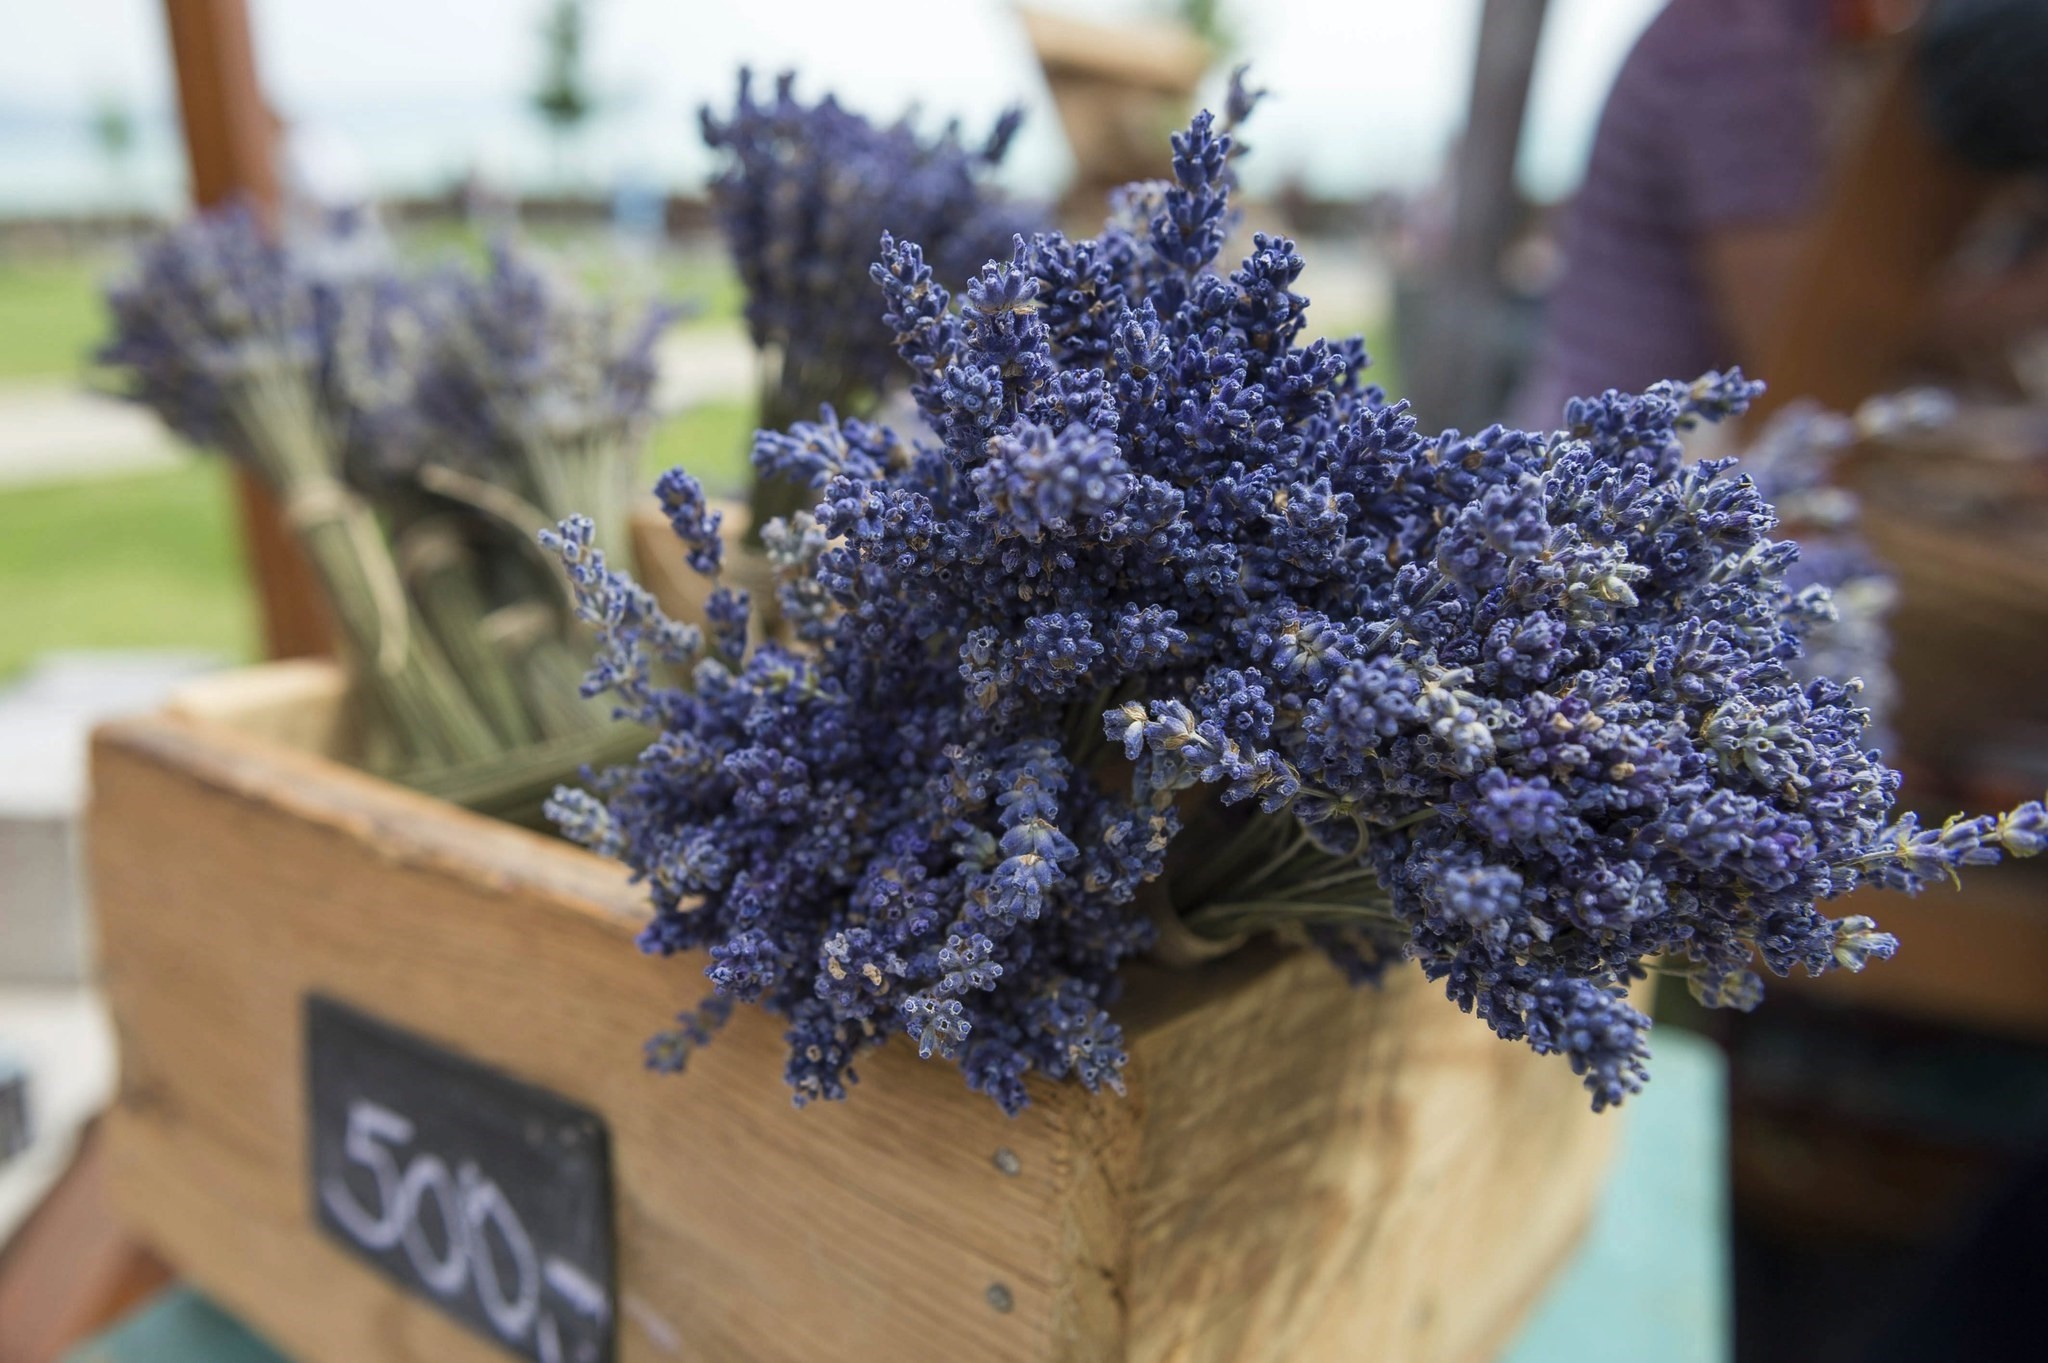 Used in several forms for herbal treatment, lavender is highly rich in Vitamin A and C, the antioxidants.